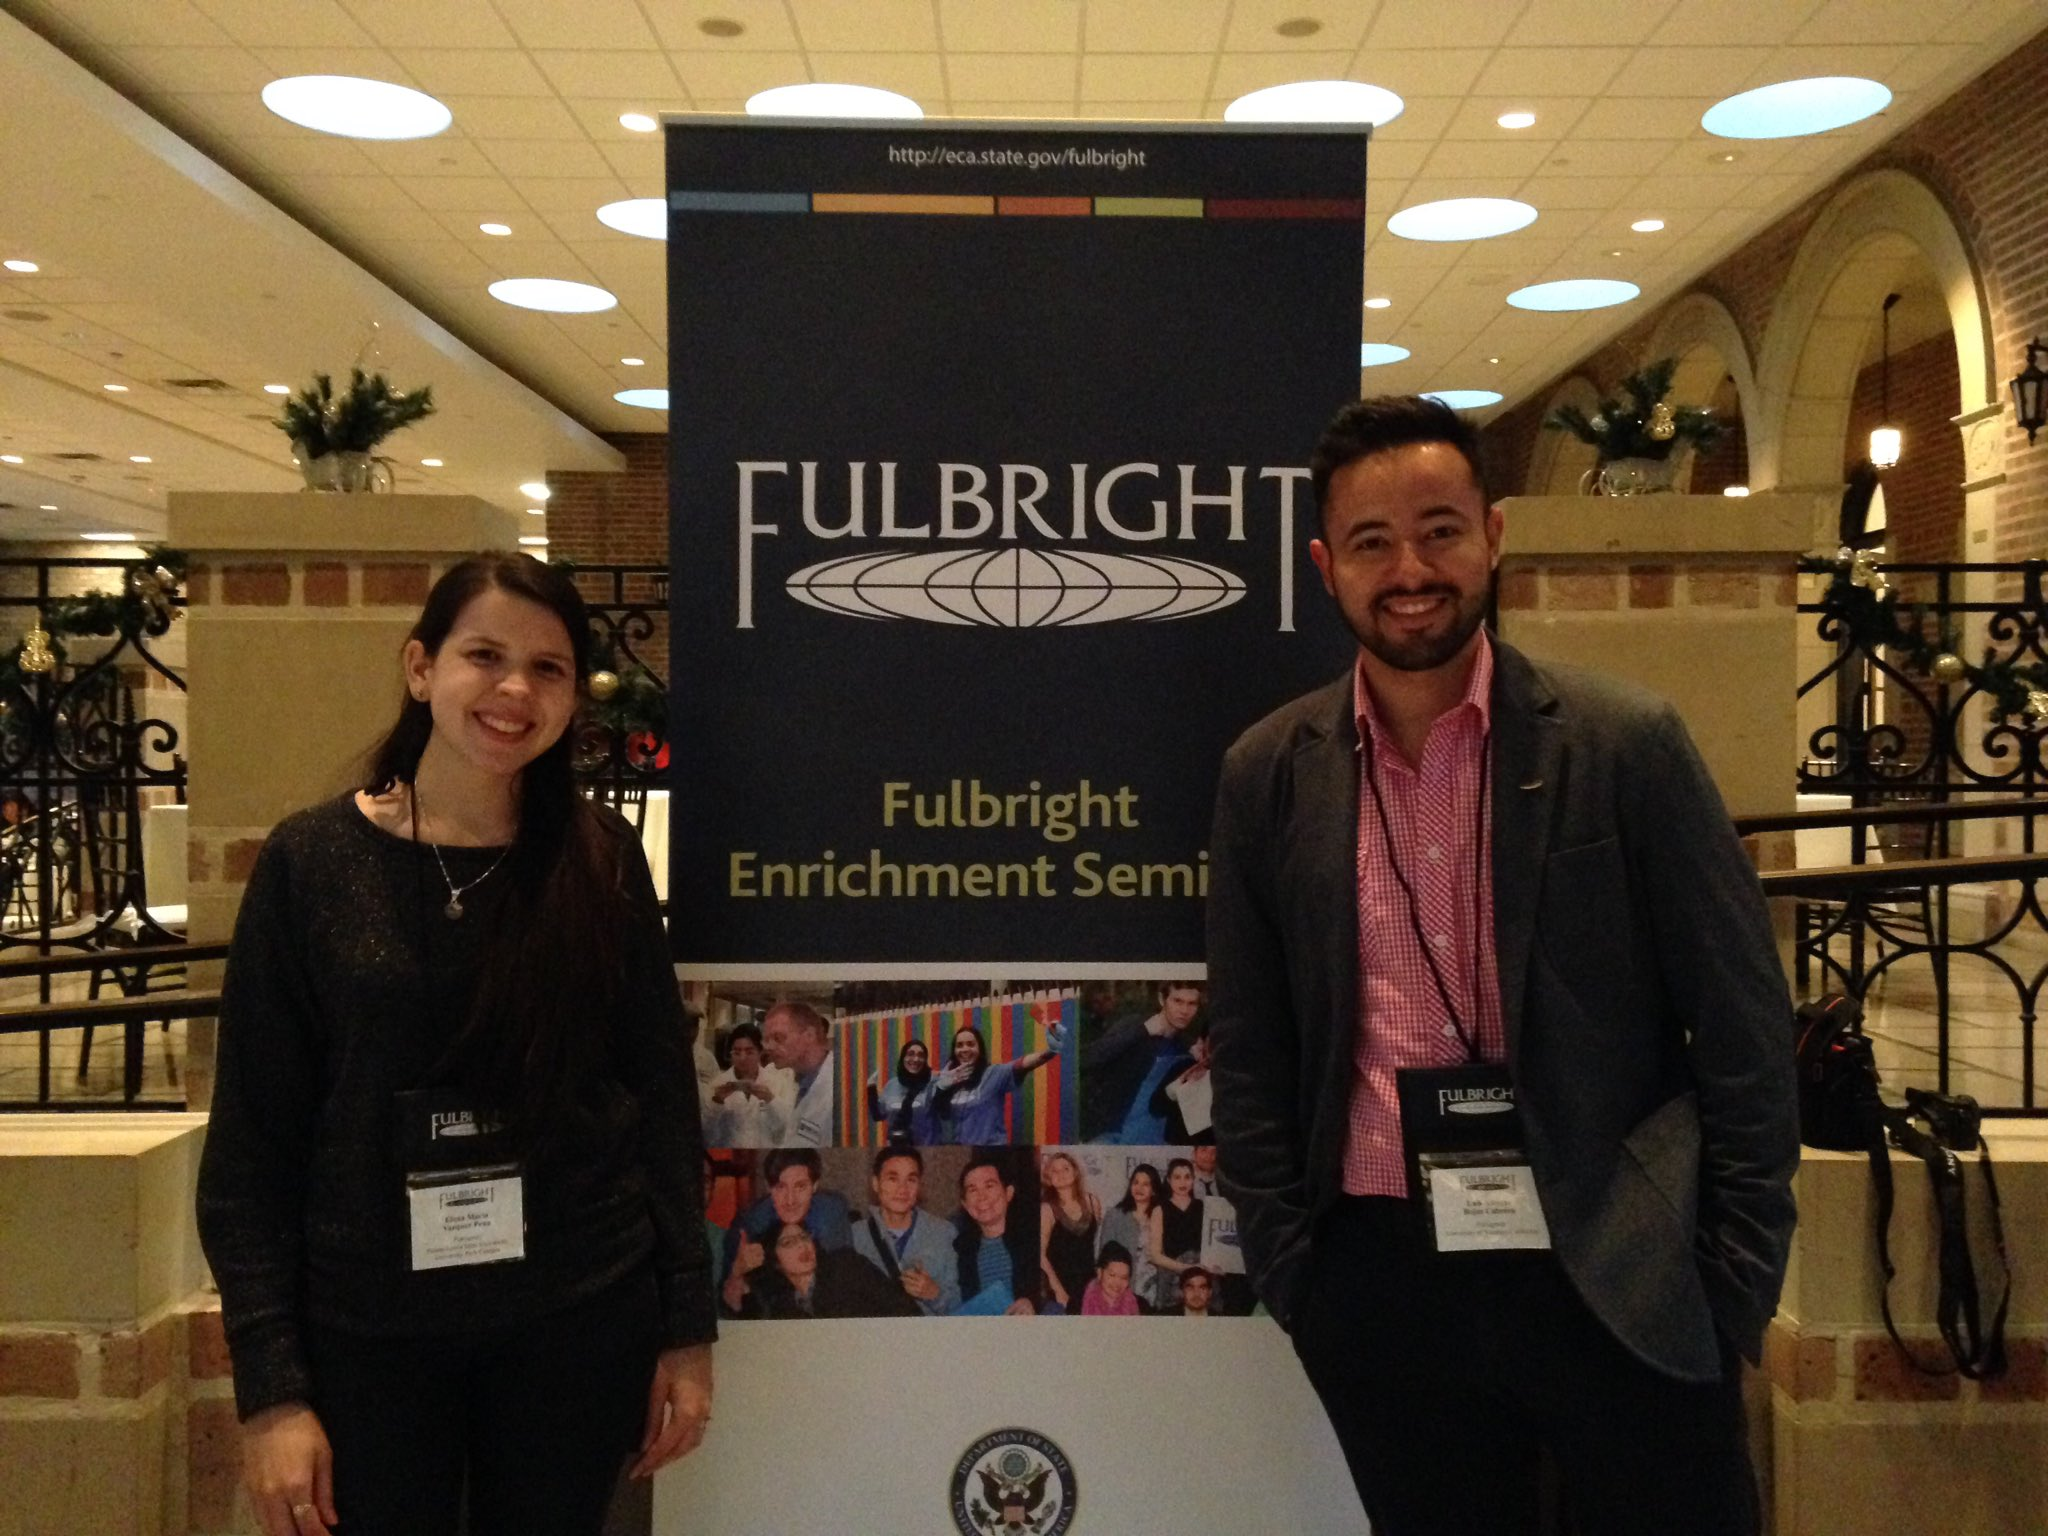 Paraguayitos en el 2016 Fulbright Enrichment Seminar - Innovation  & Entrepreneurship #fulbrighthouston2016 #fulbright https://t.co/omrxwWJQCd